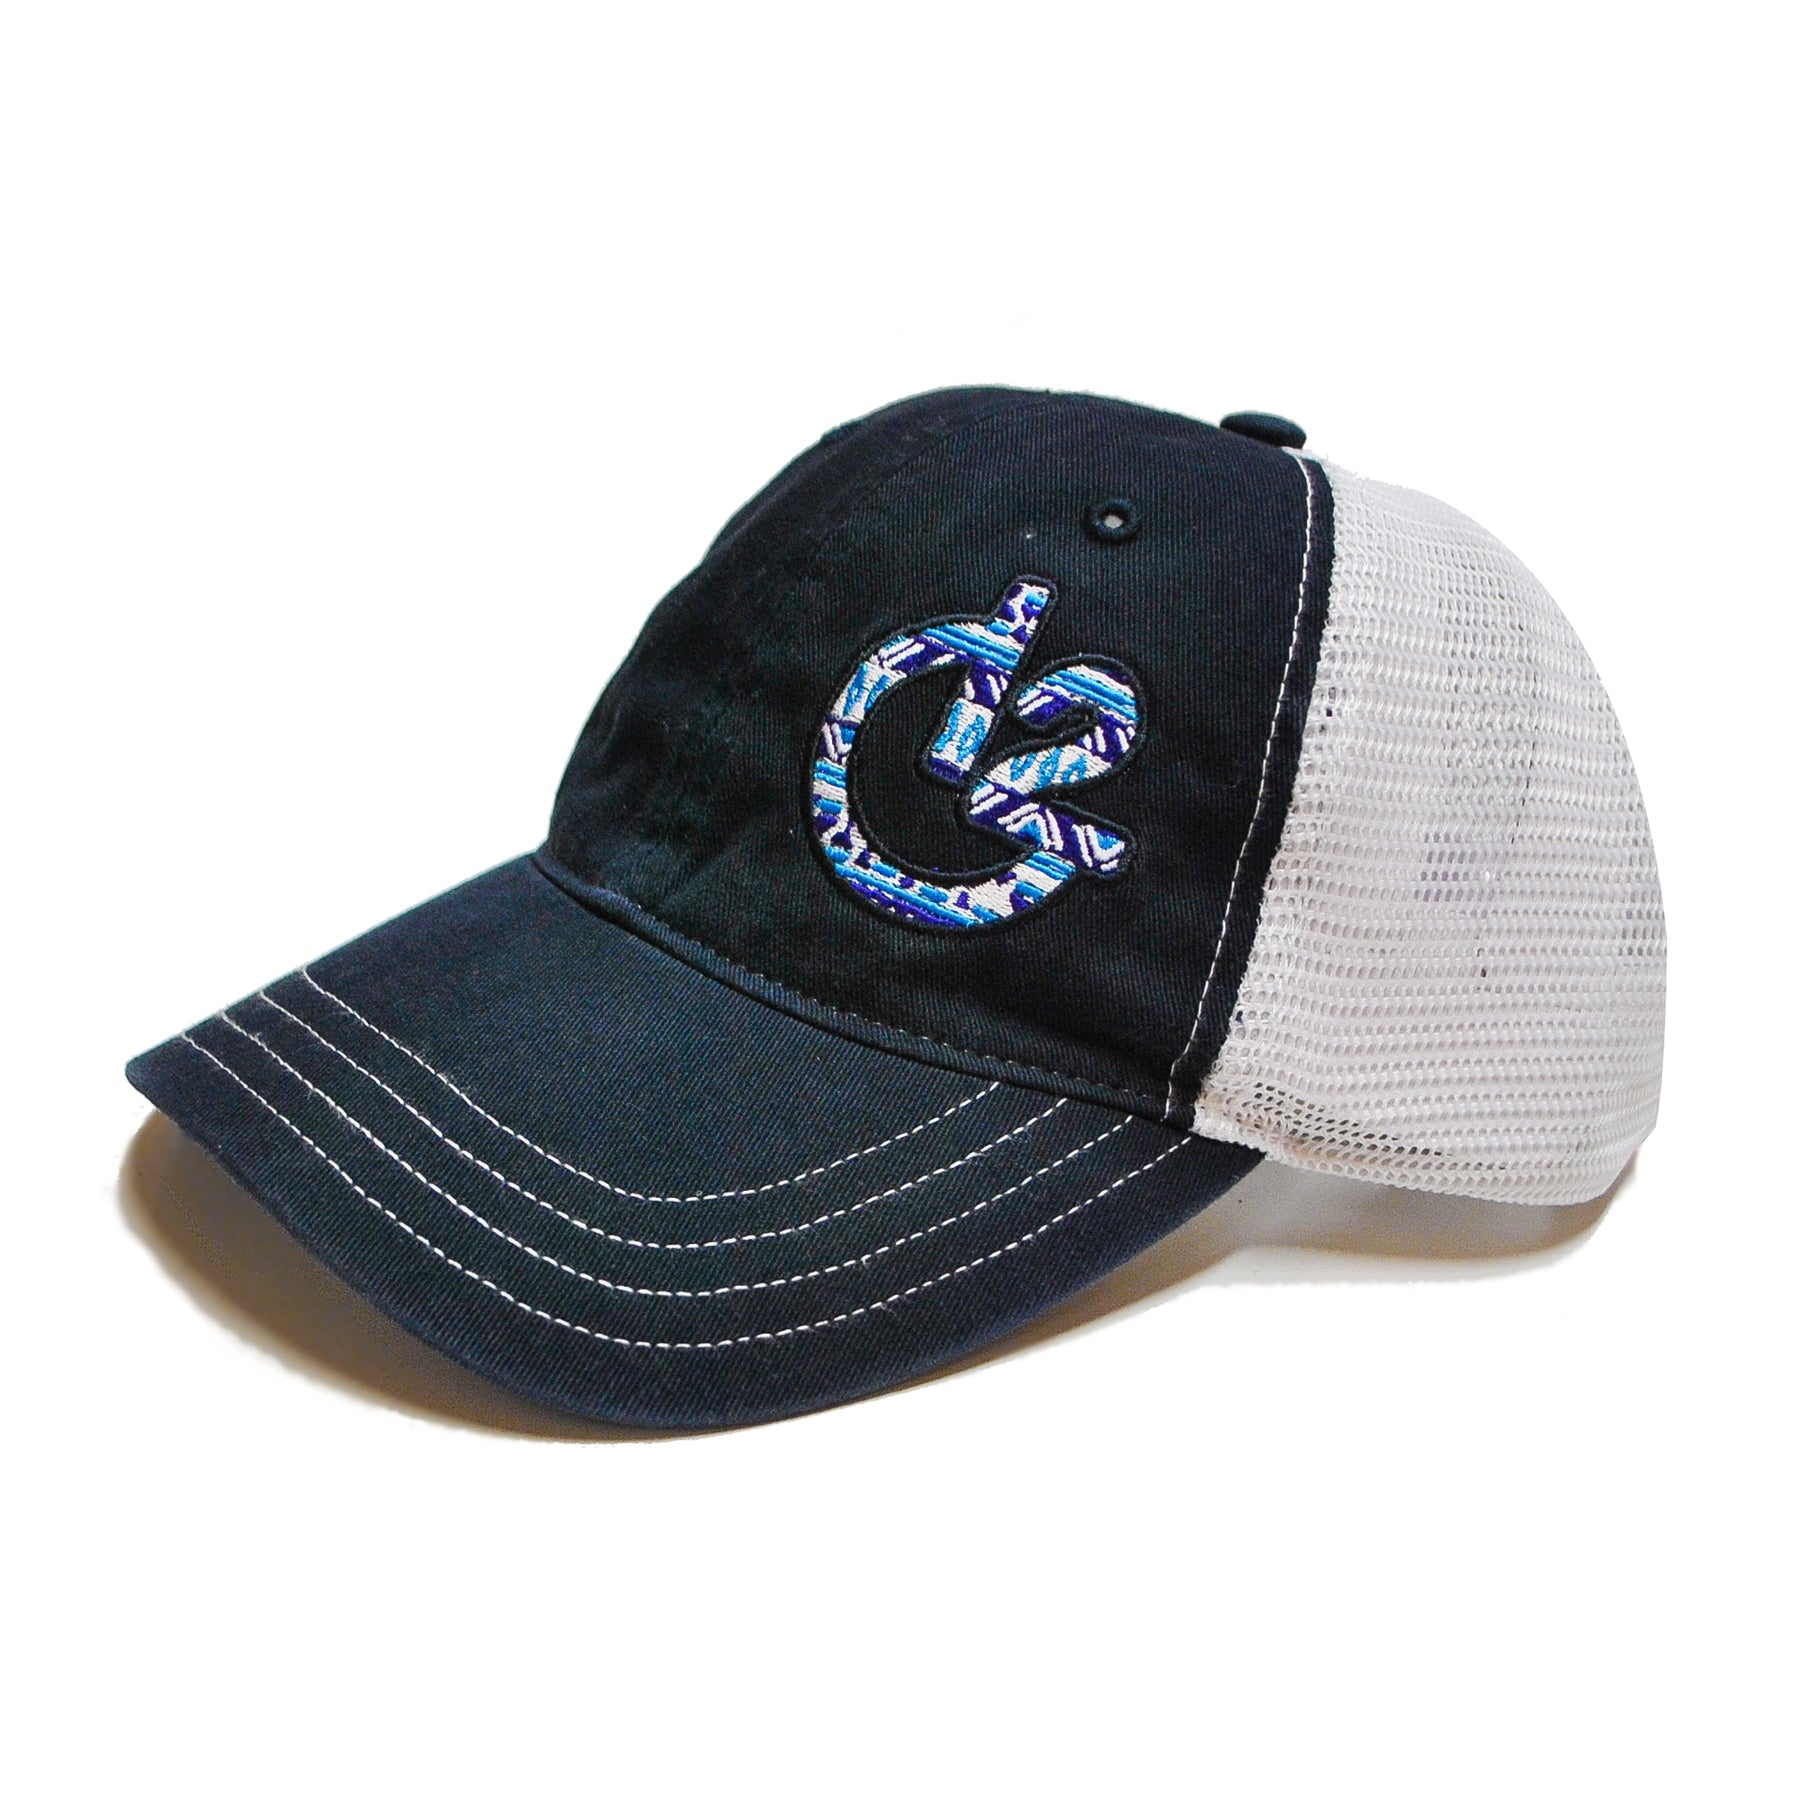 12 Gauge Ranch Aztec Navy and White Low Profile Baseball Hat, Hats, 12 Gauge Ranch, 12 Gauge Ranch Ranch  12 Gauge Ranch